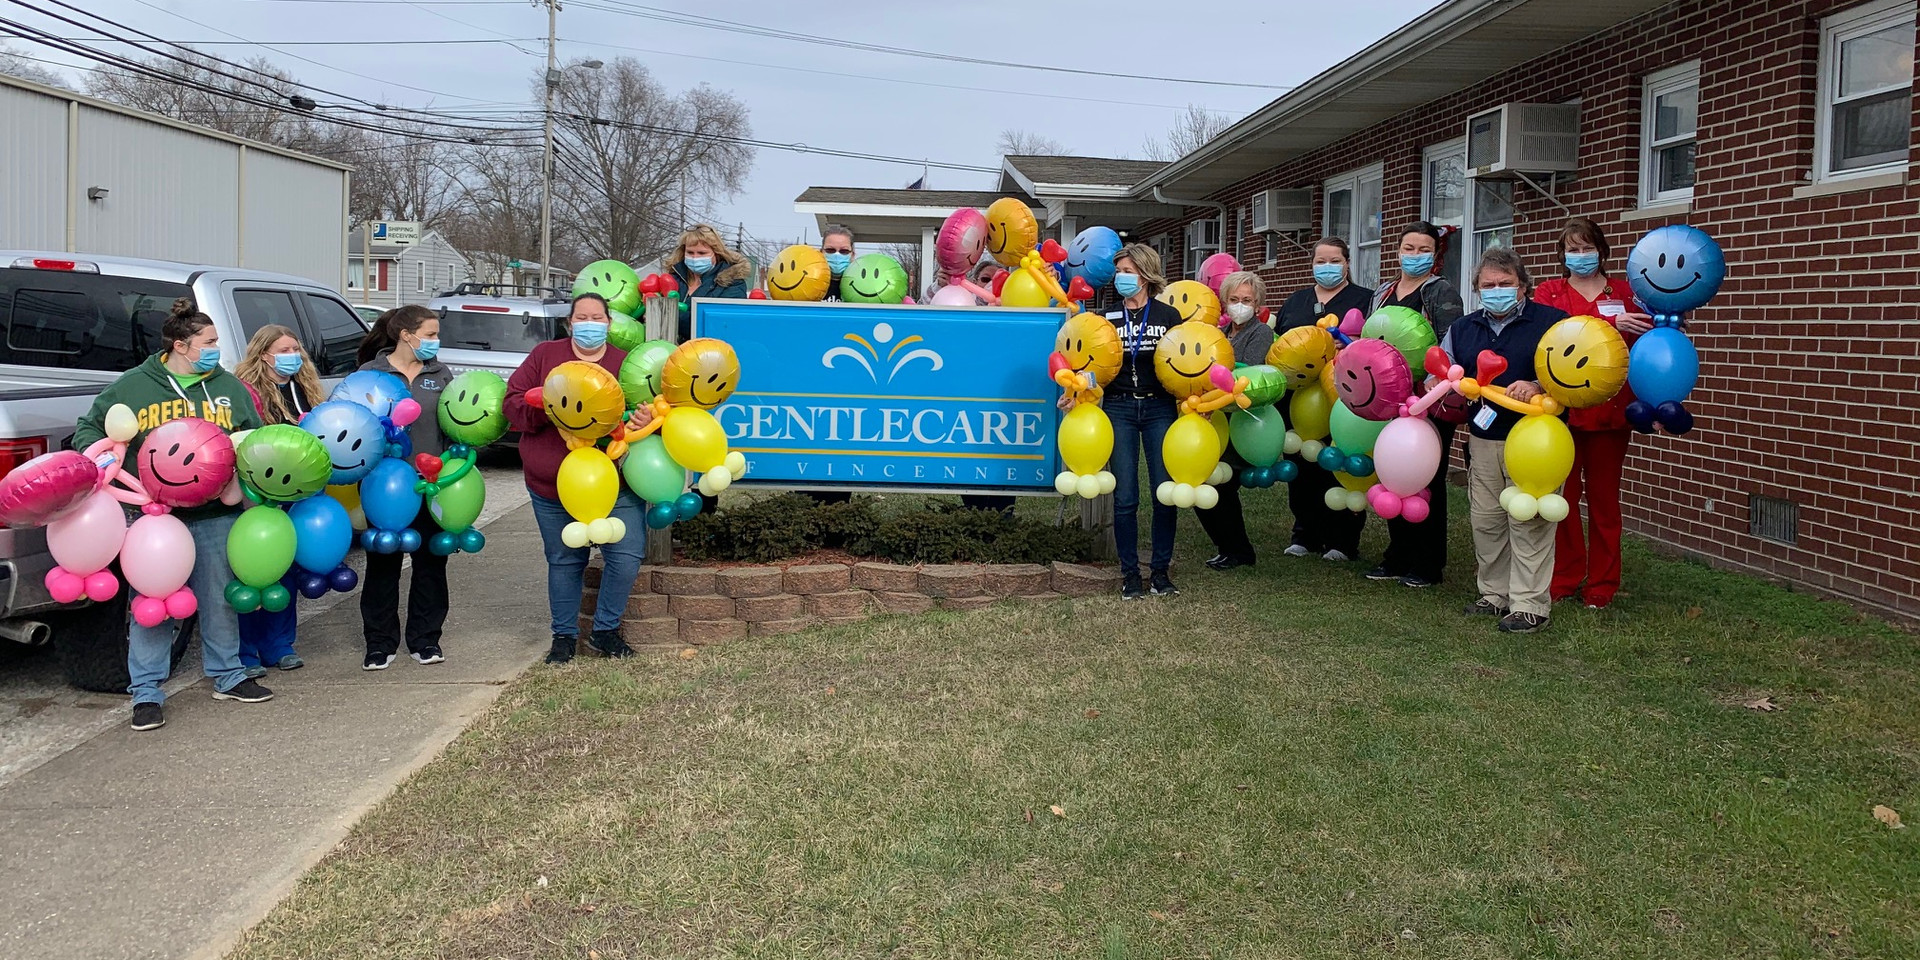 GentleCare team excited